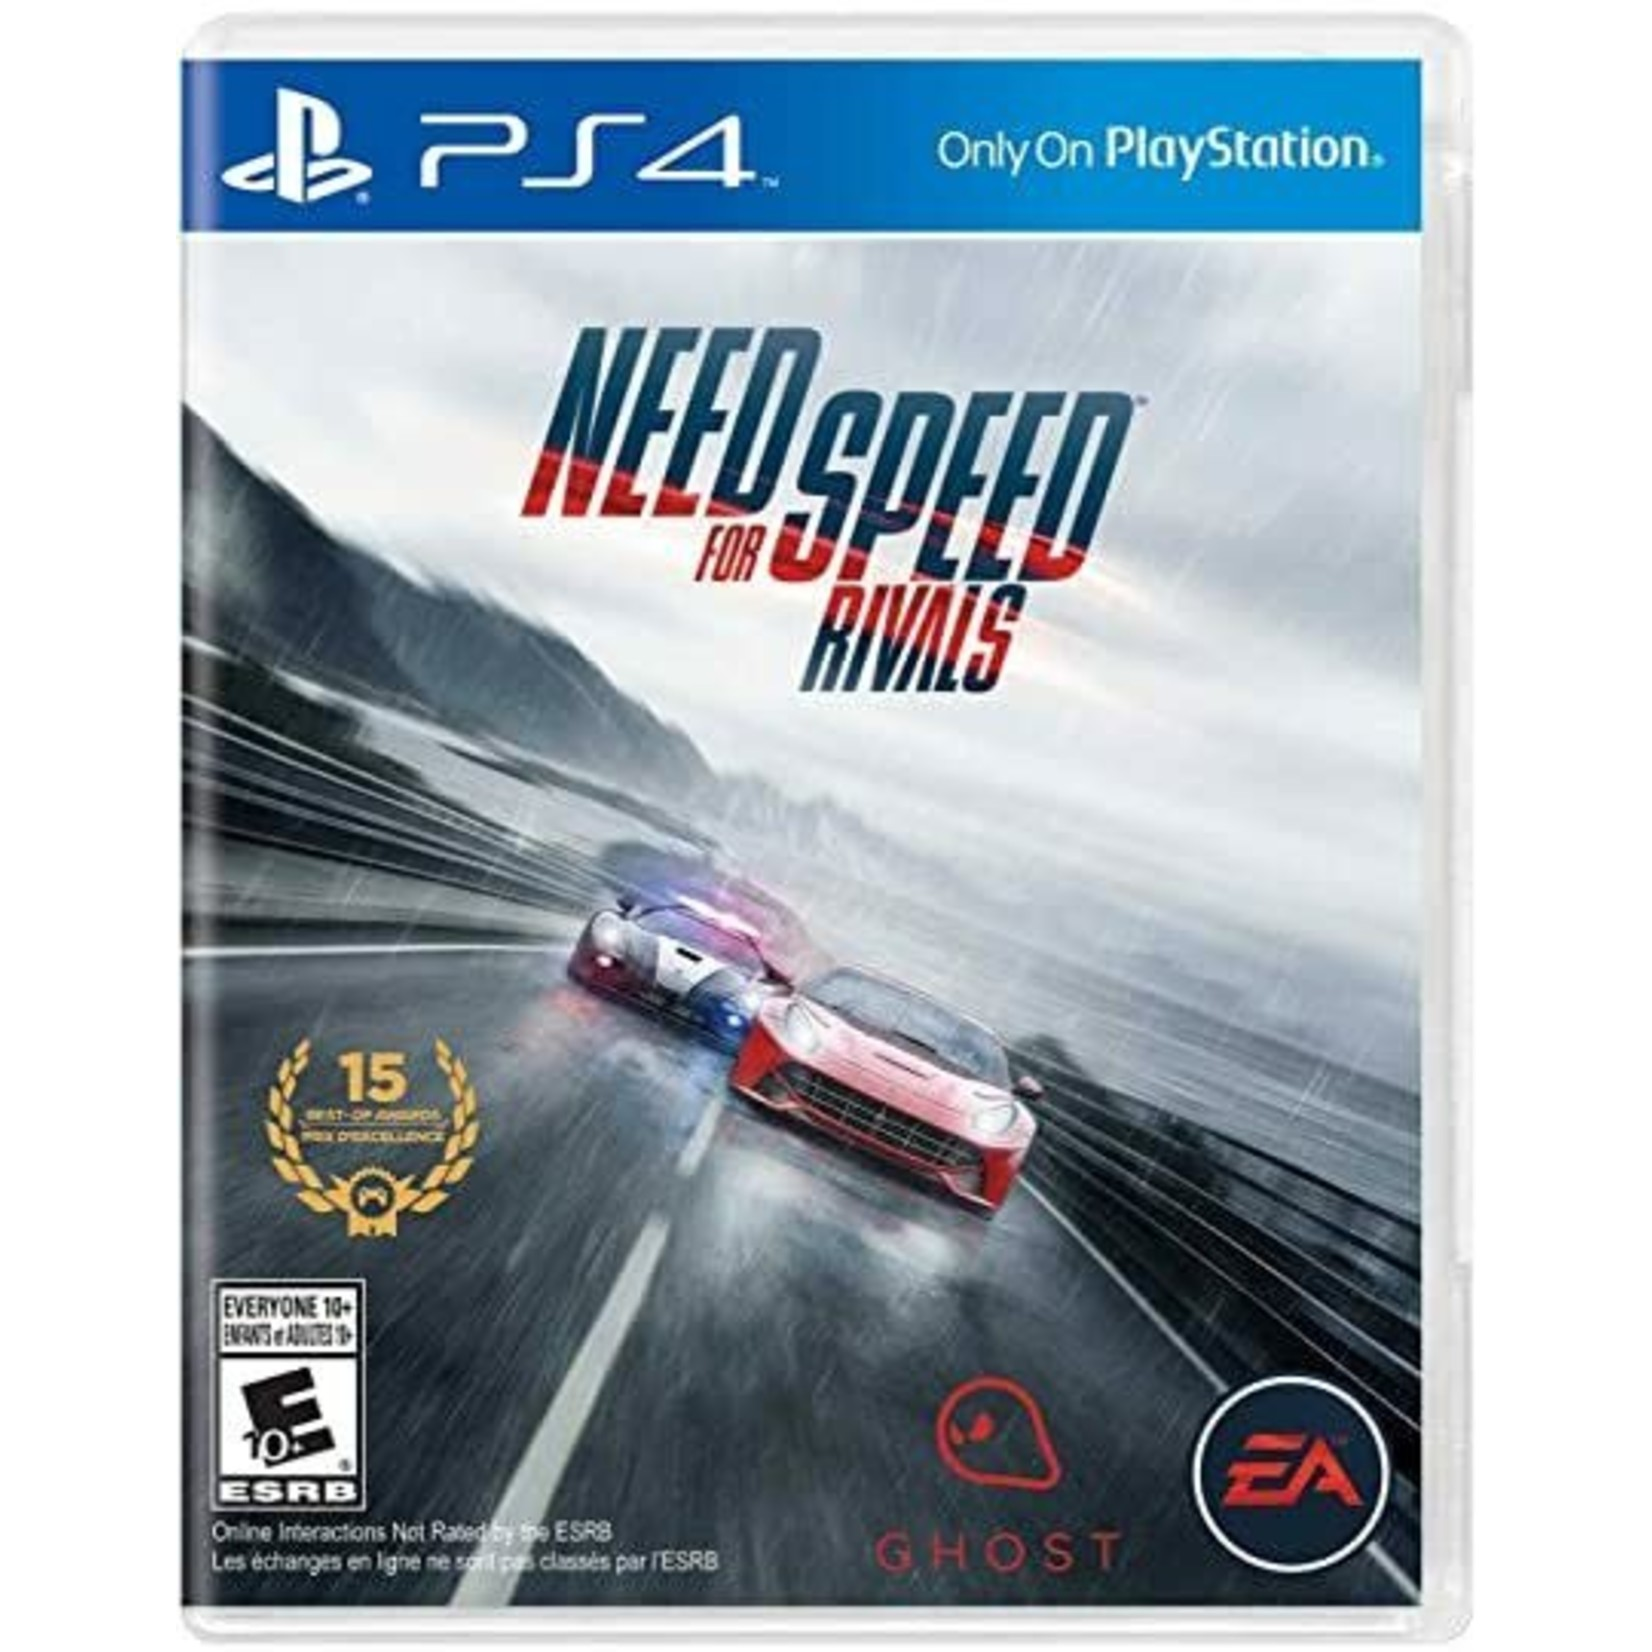 PS4U-NEED FOR SPEED: RIVALS